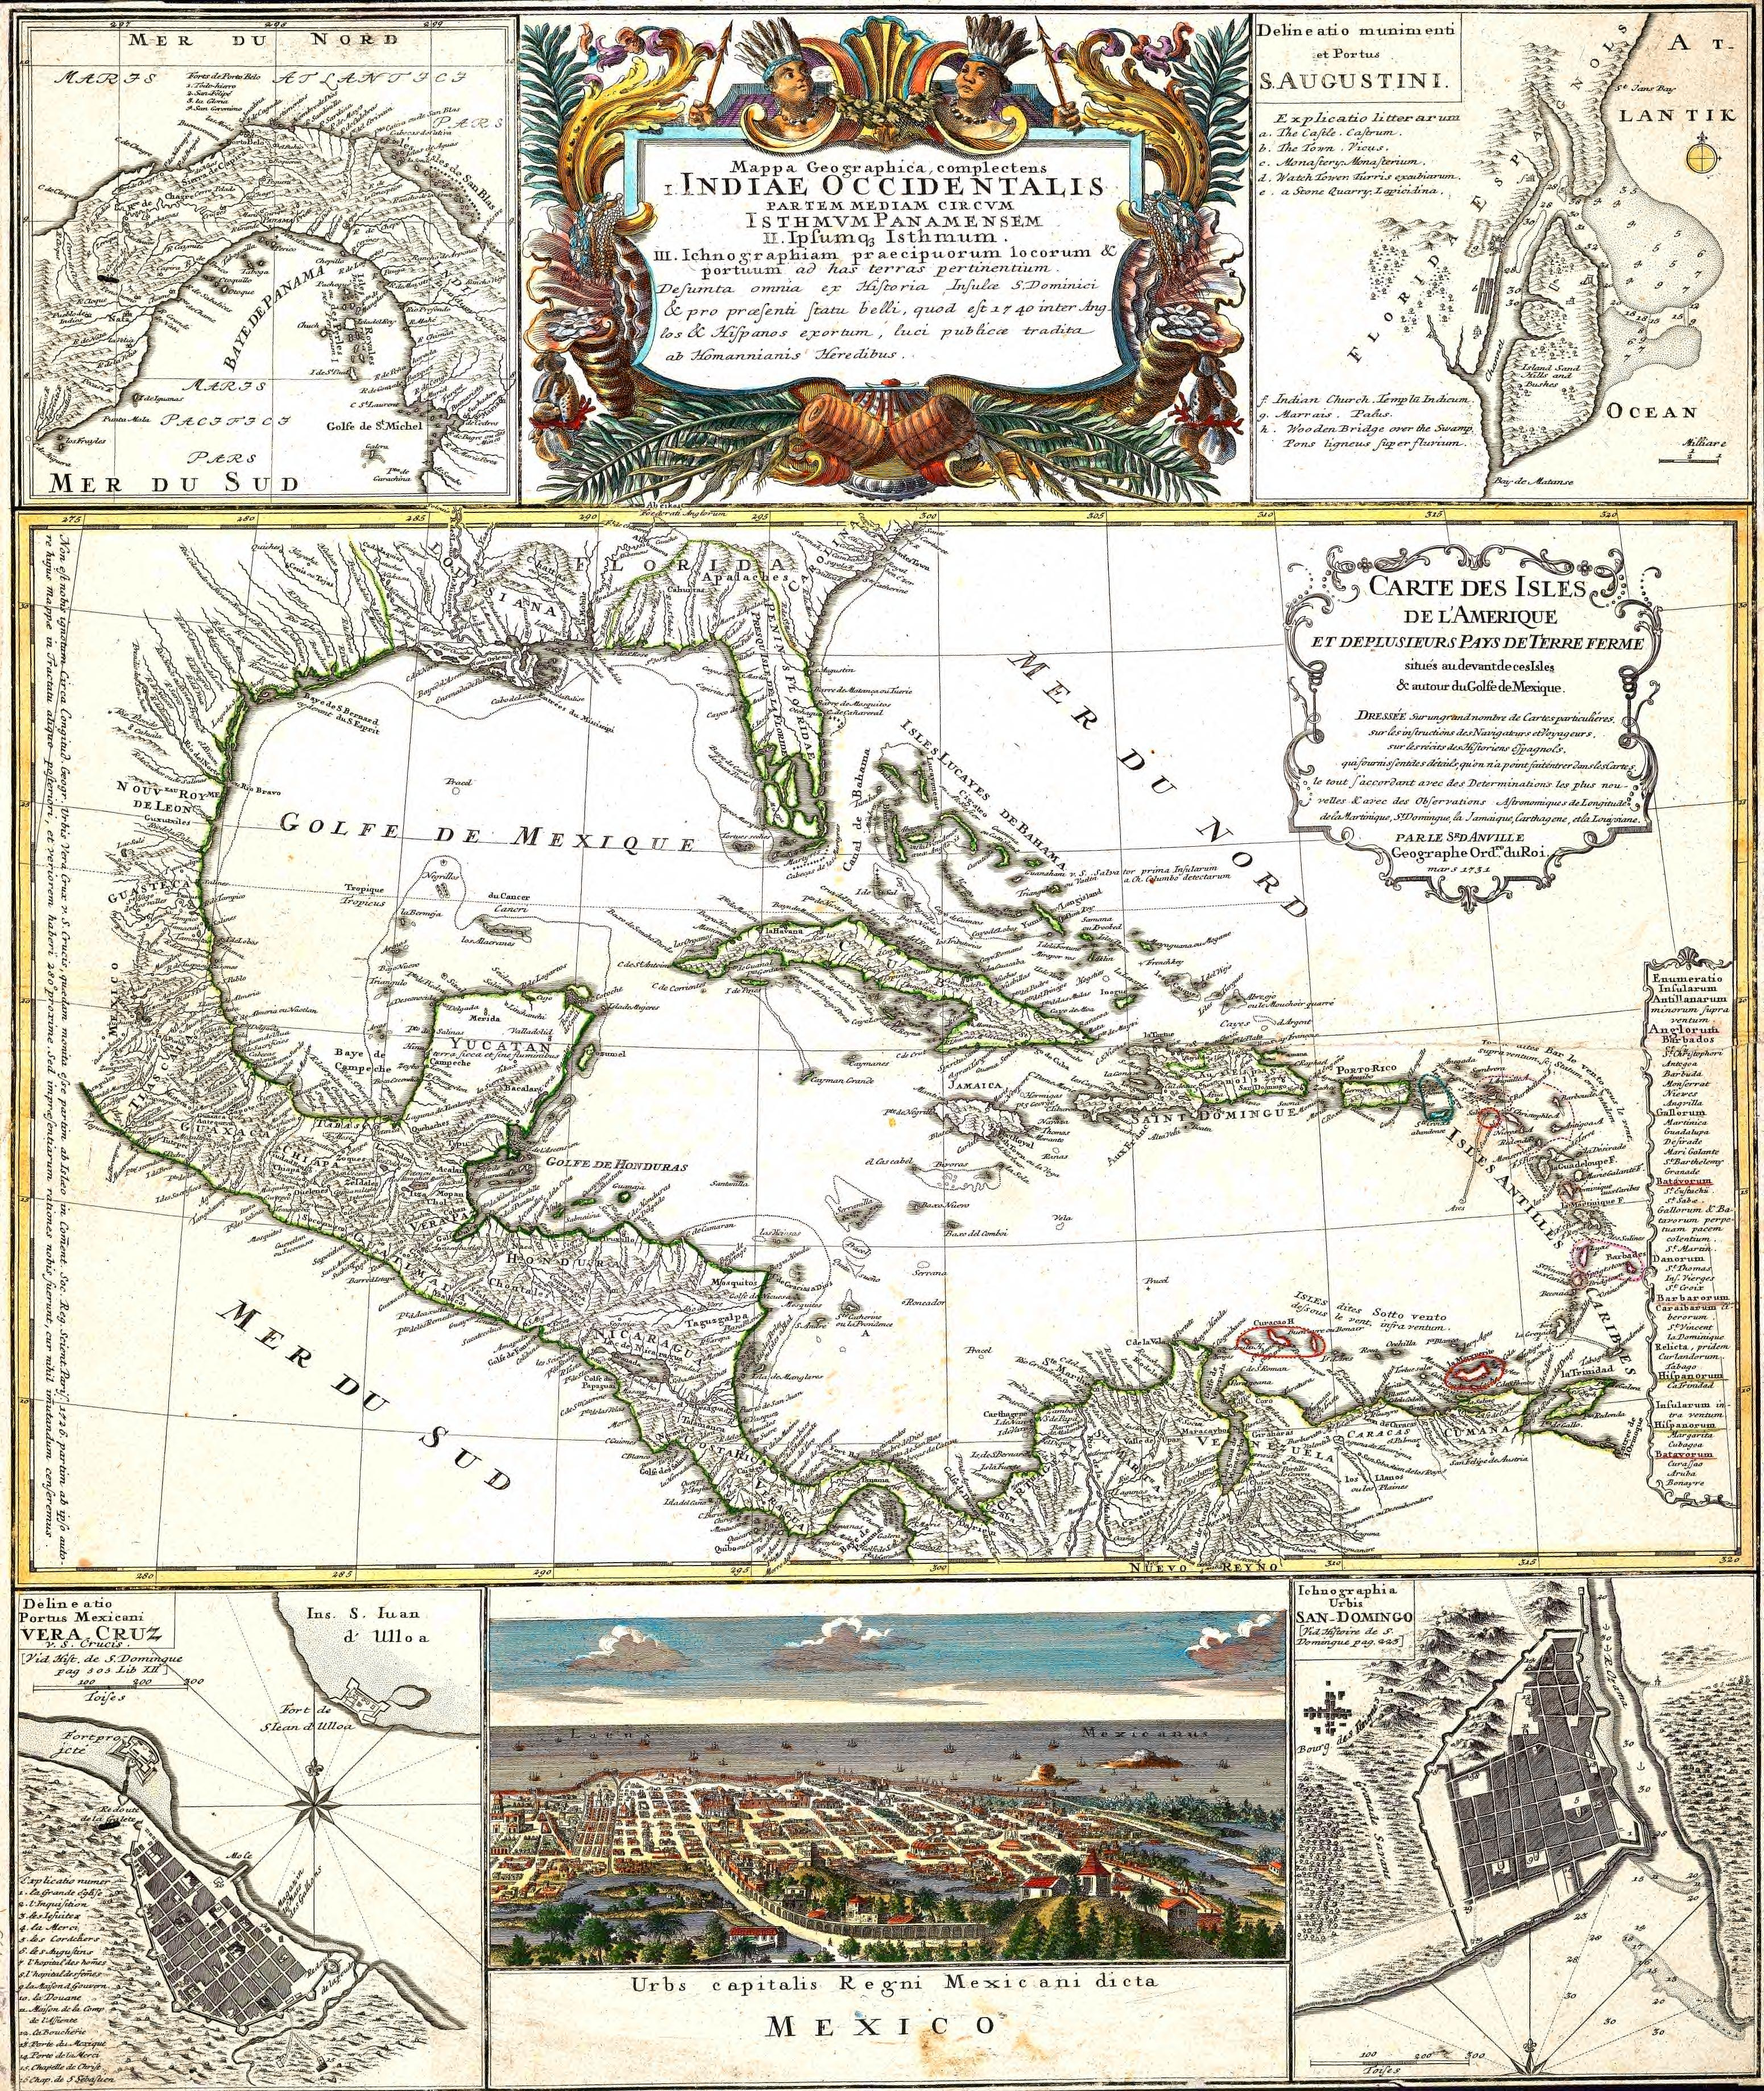 Central America and the Caribbean c. 1800